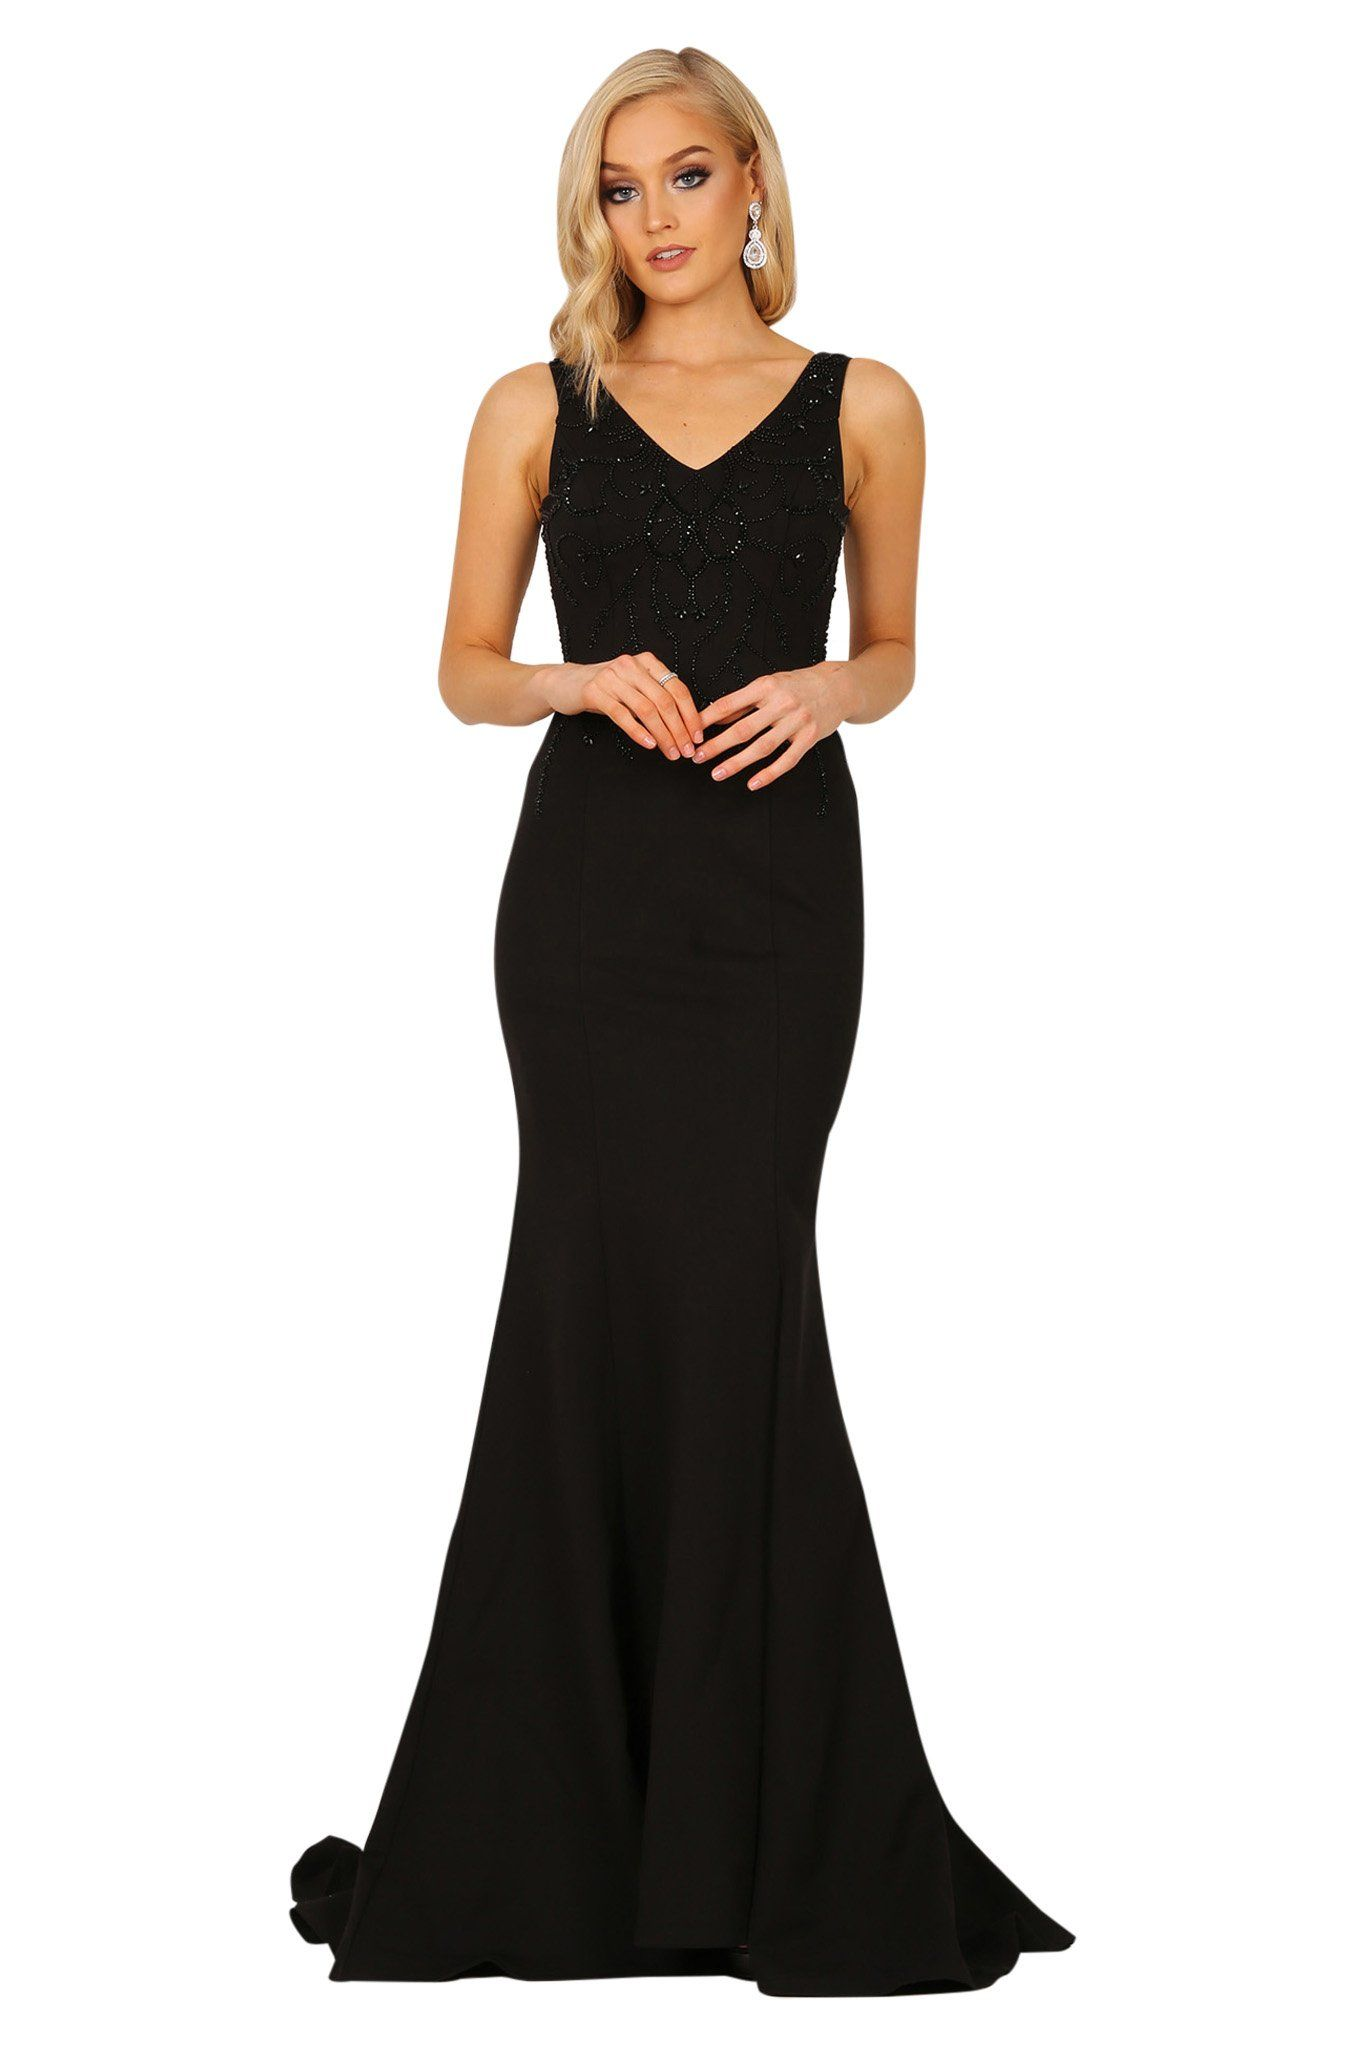 e15bd41d68141 Black sleeveless fitted floor length evening gown featuring v neckline